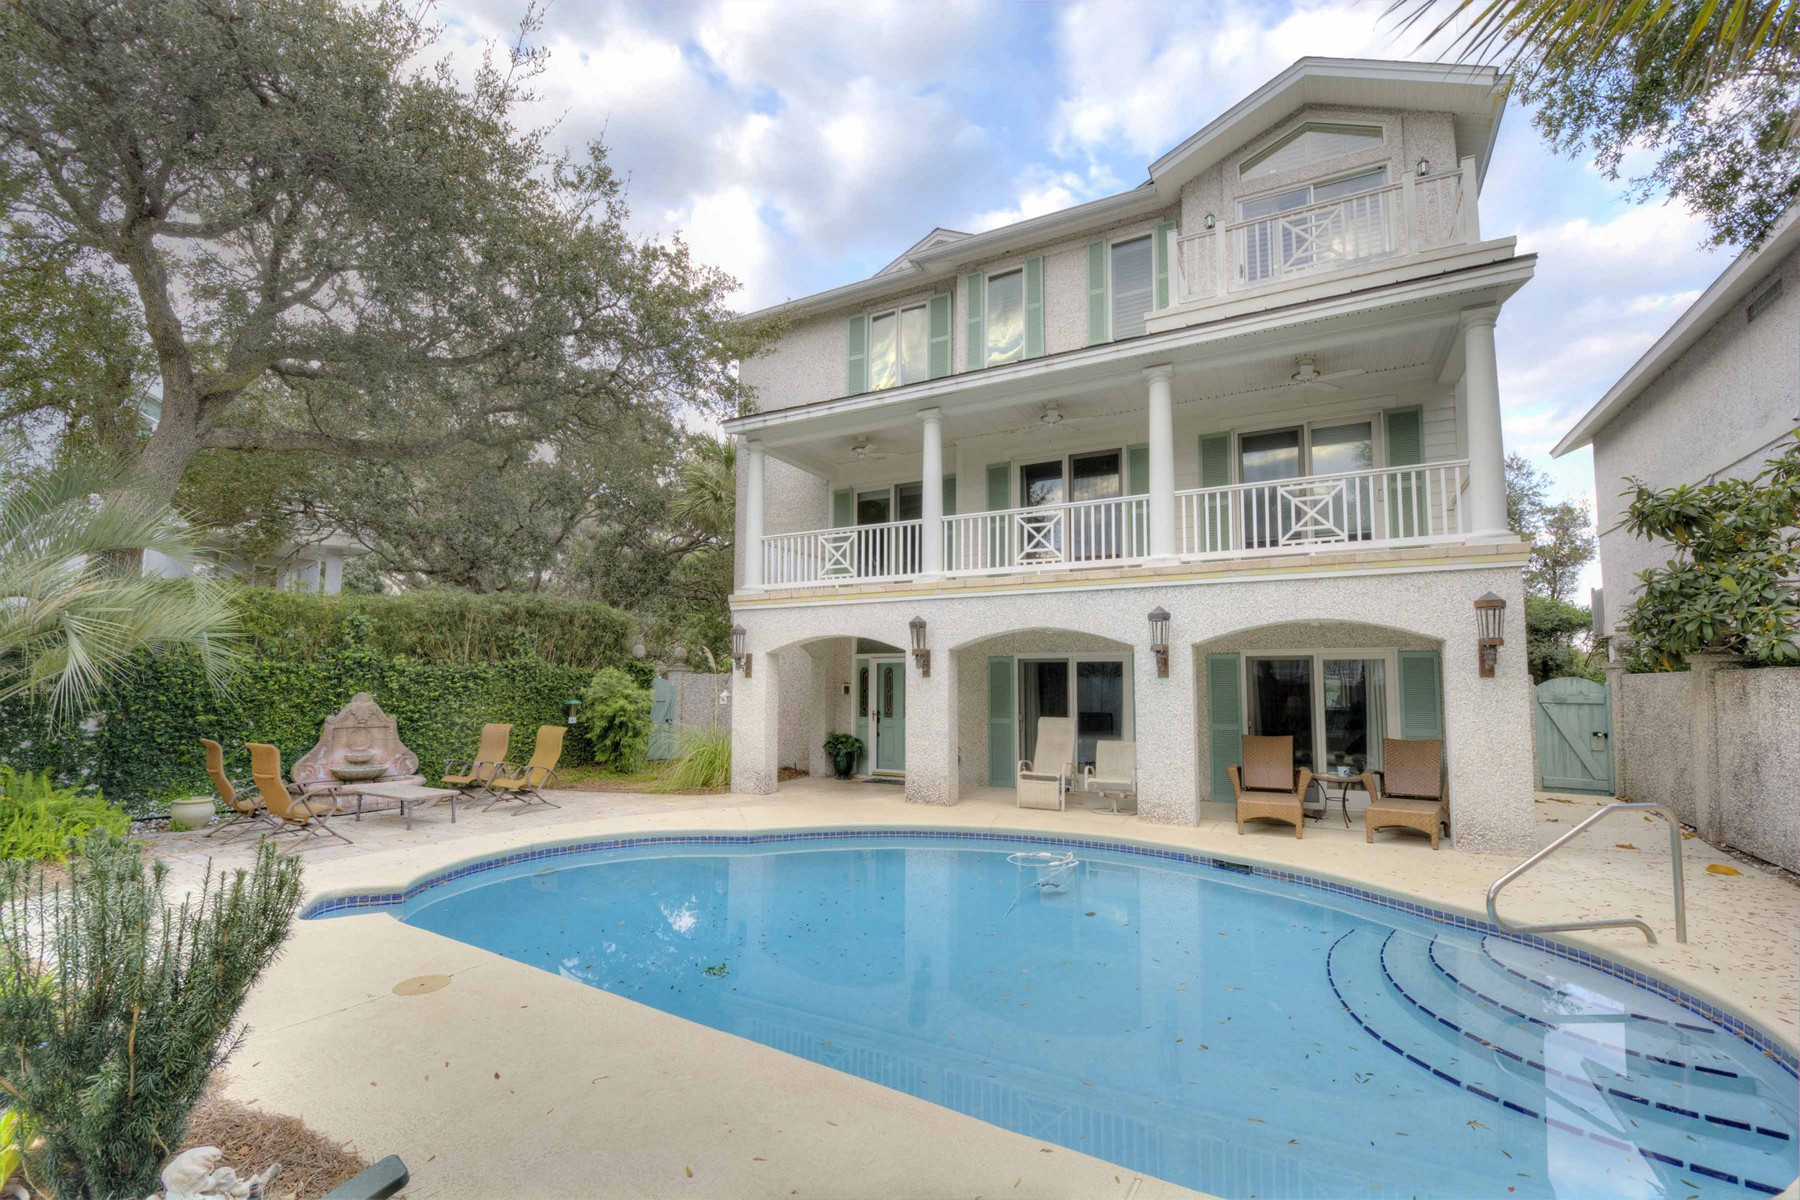 Single Family Home for Active at 4226 Thirteenth St. Simons Island, Georgia 31522 United States